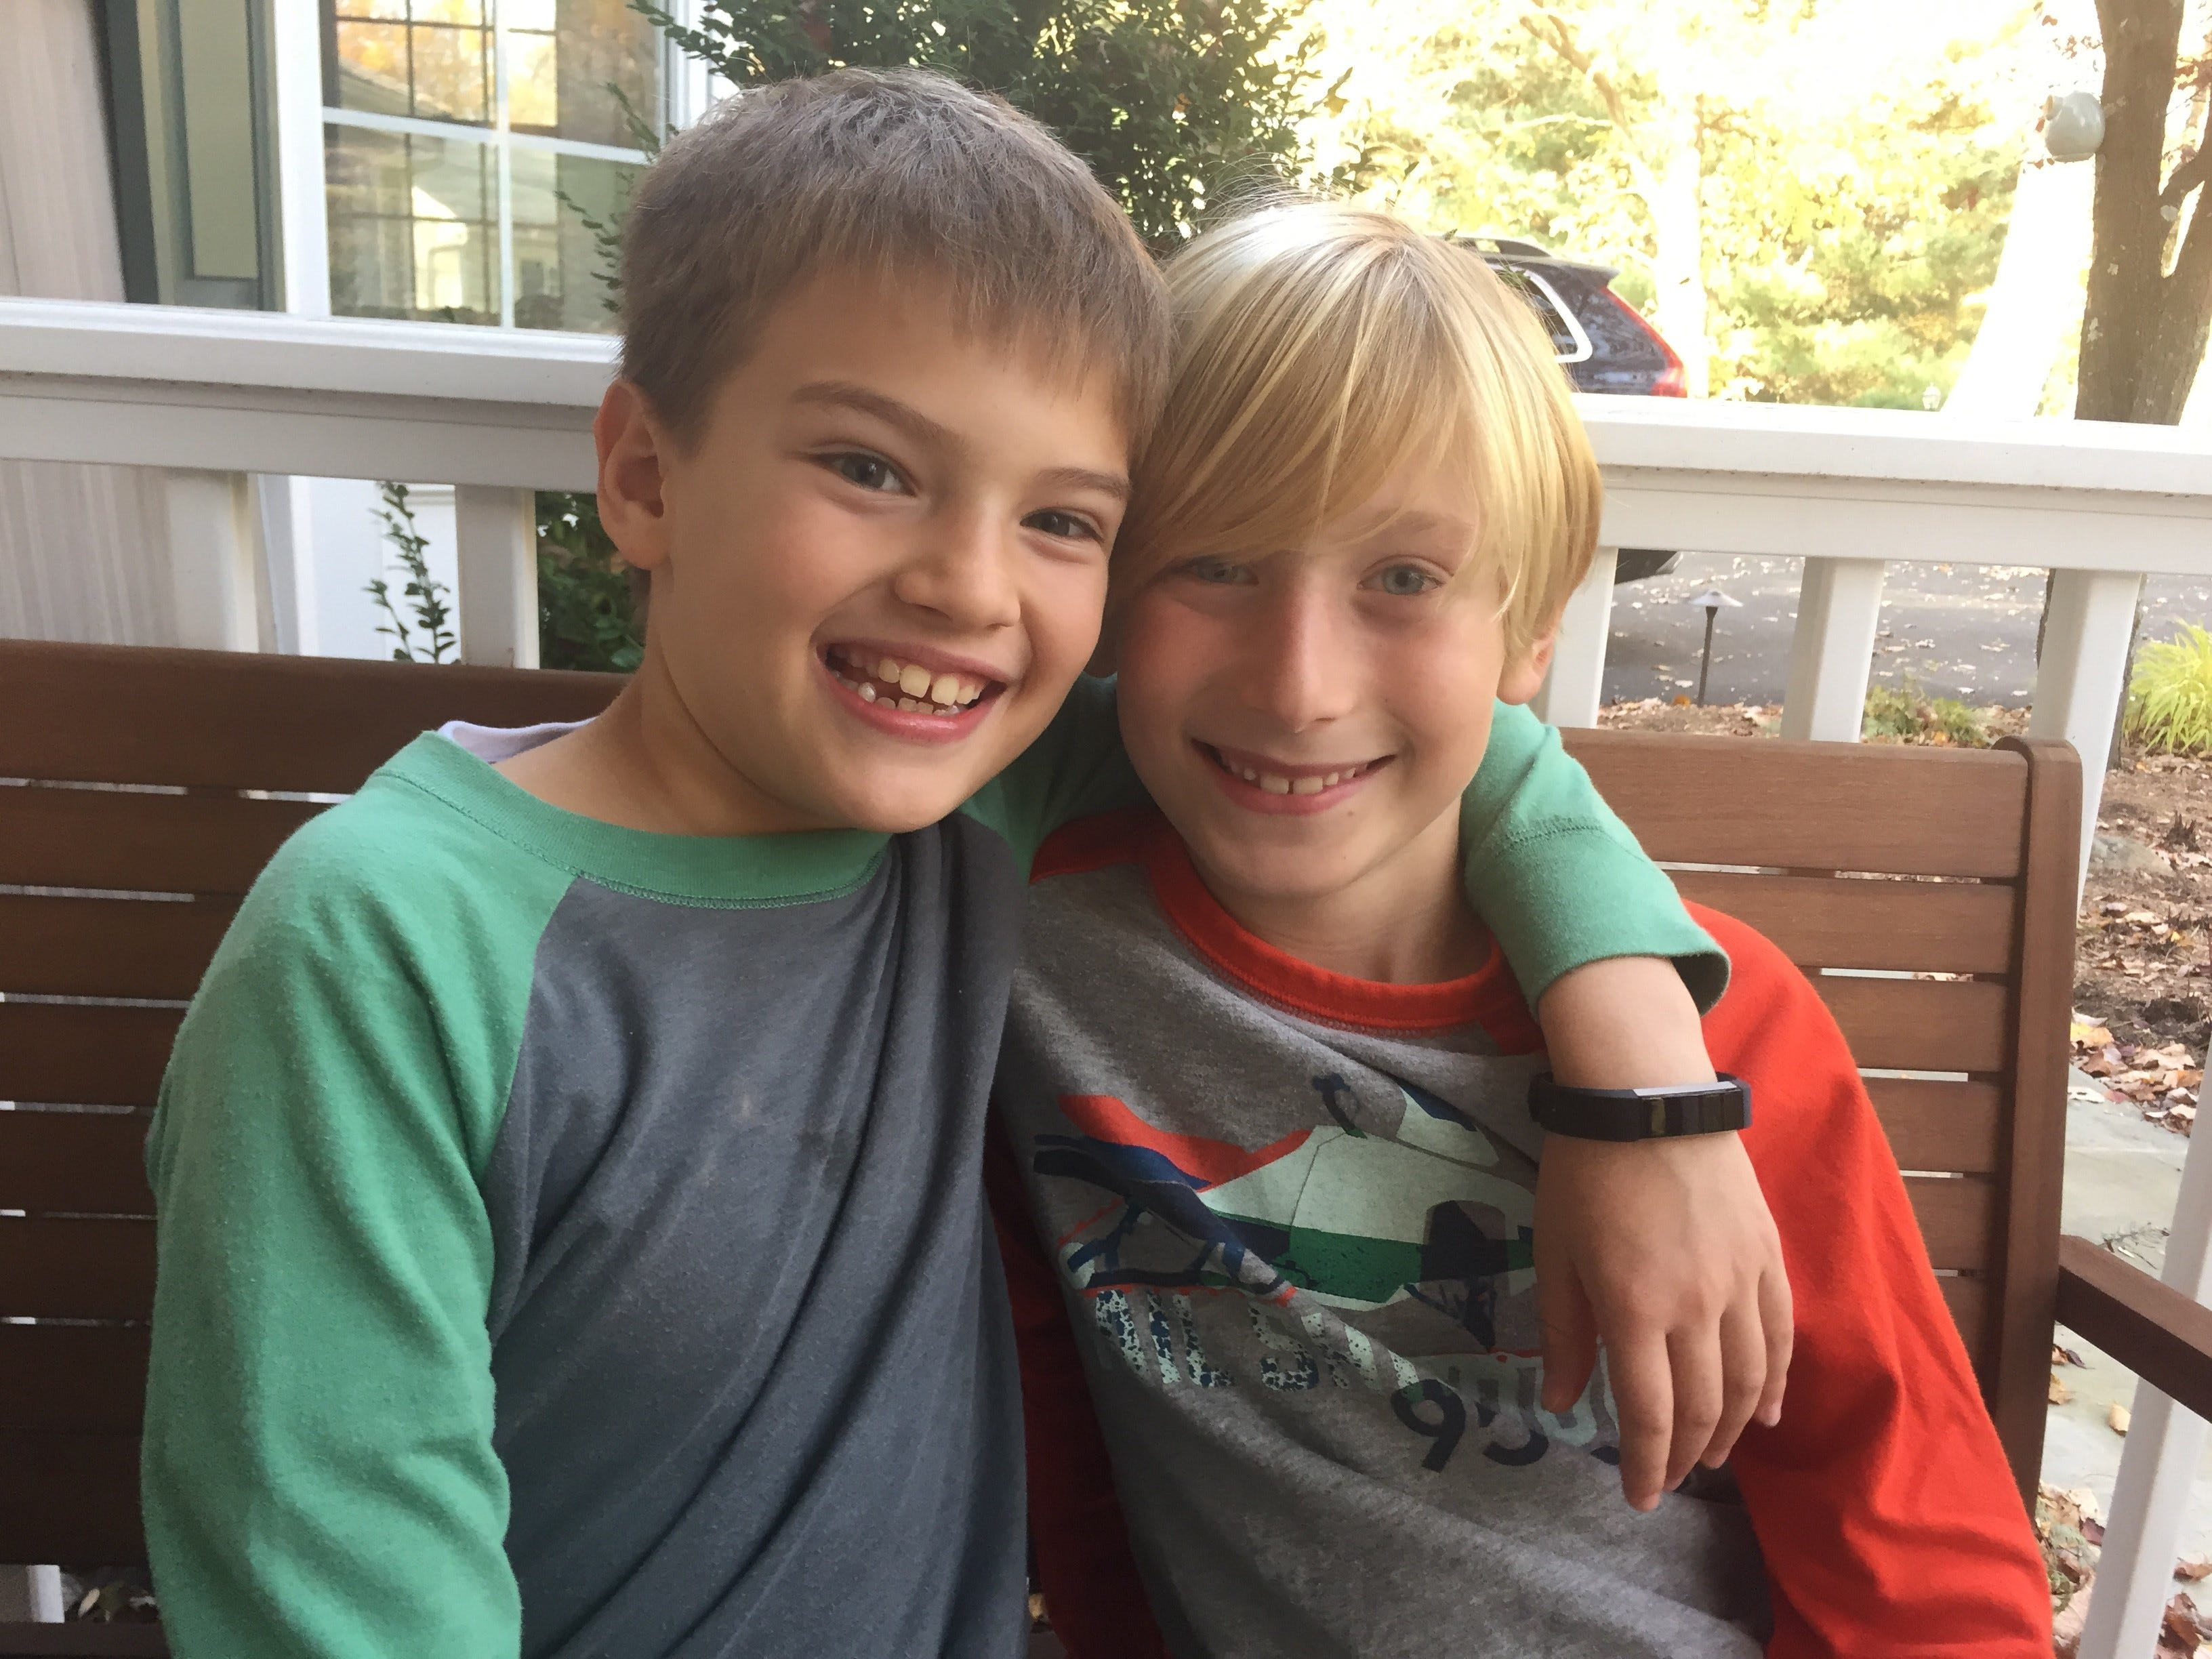 Chappaqua boys to throw first pitch at Yankee game